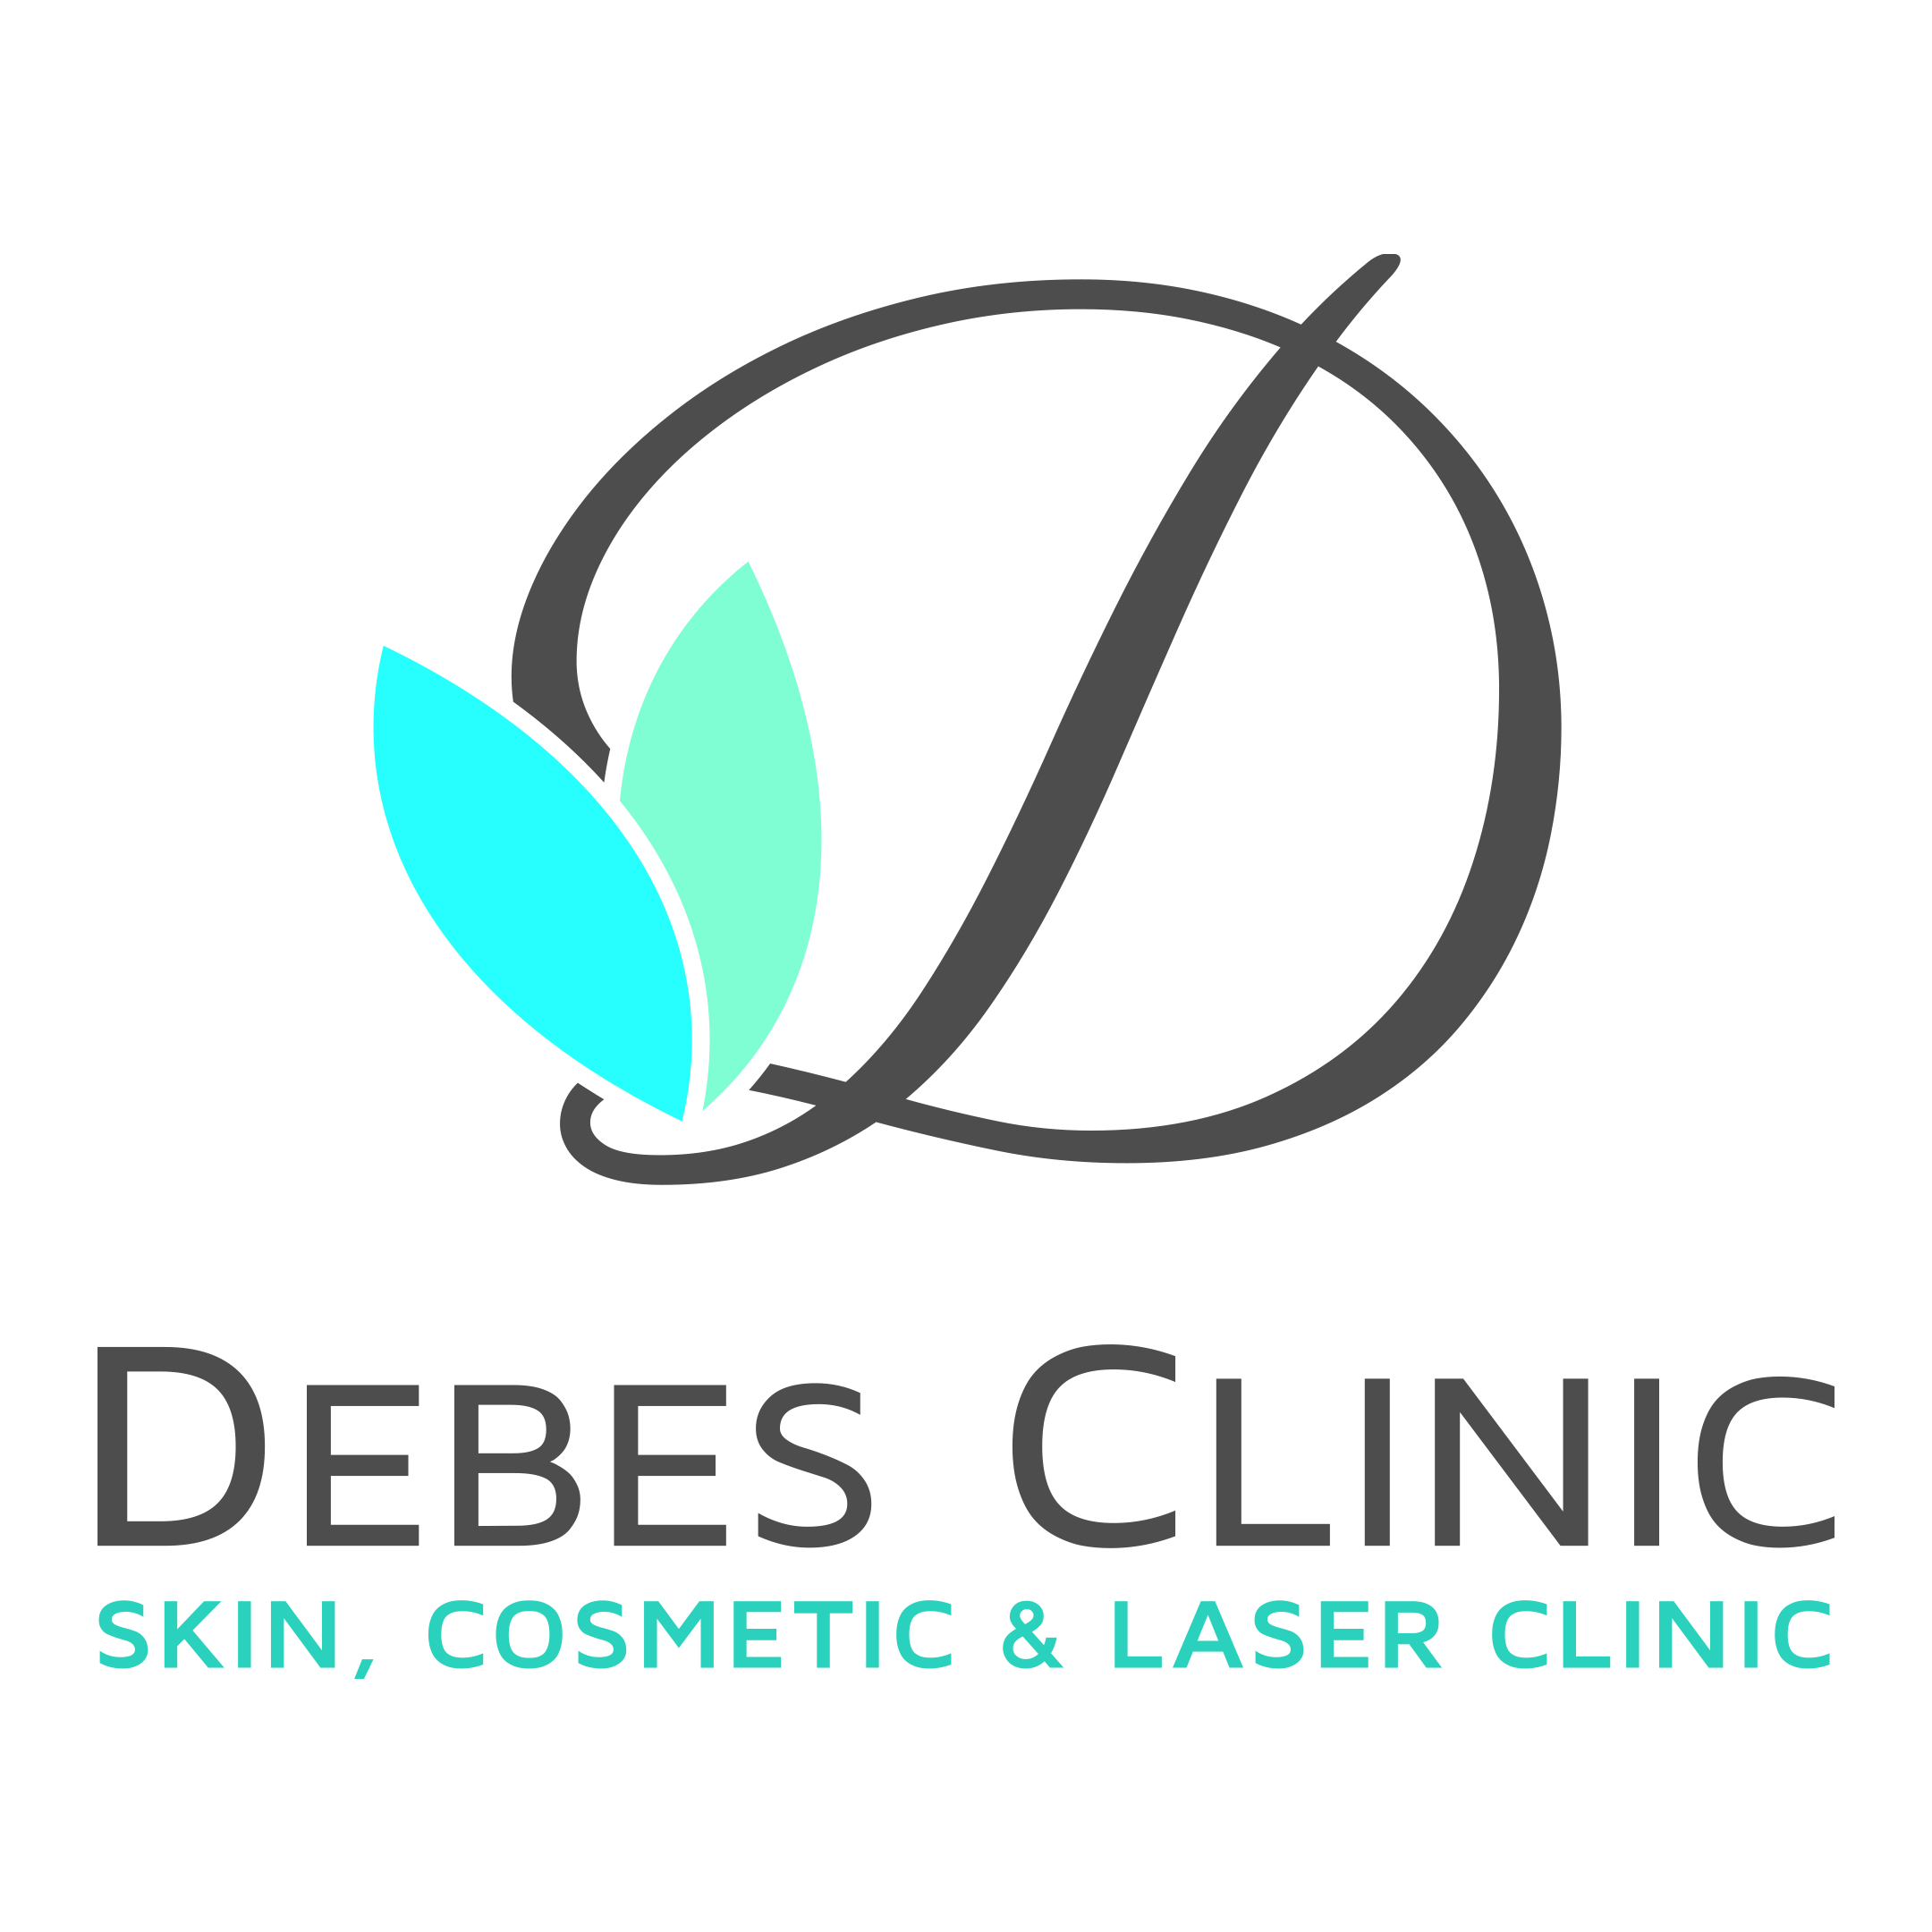 Debes Clinic - Logo PNG 1